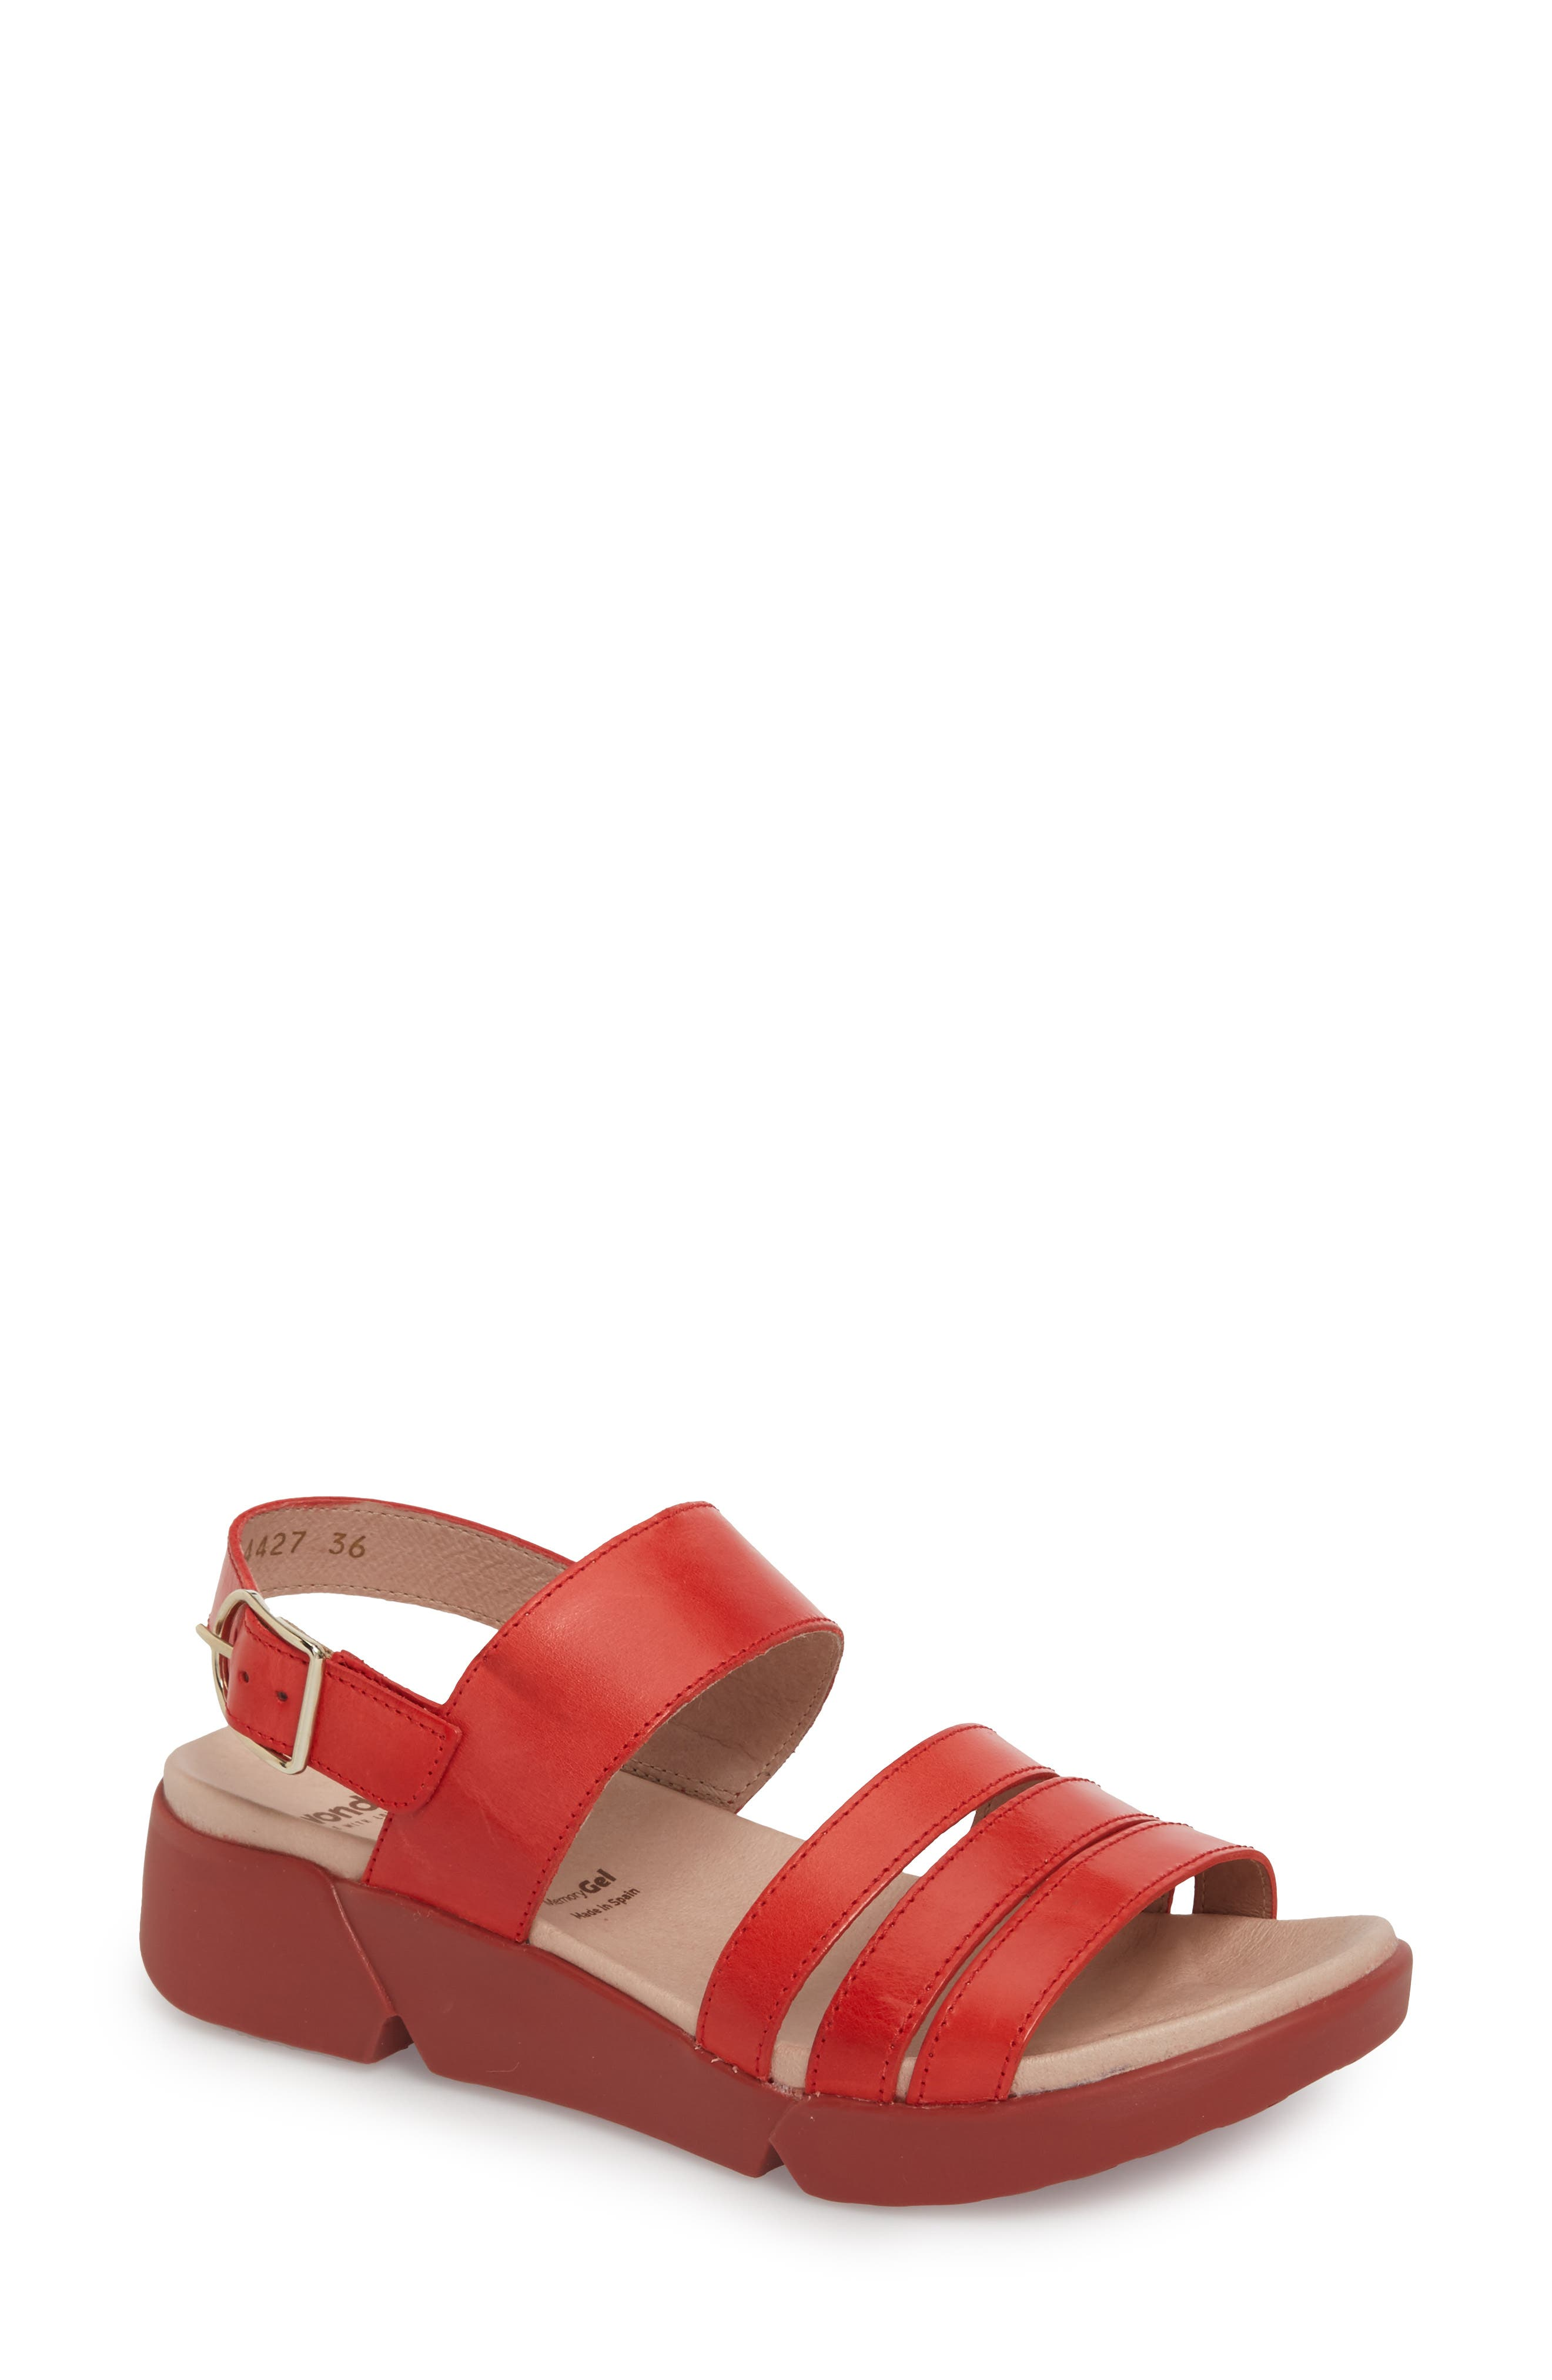 Wonders A-8004 Sandal, Red